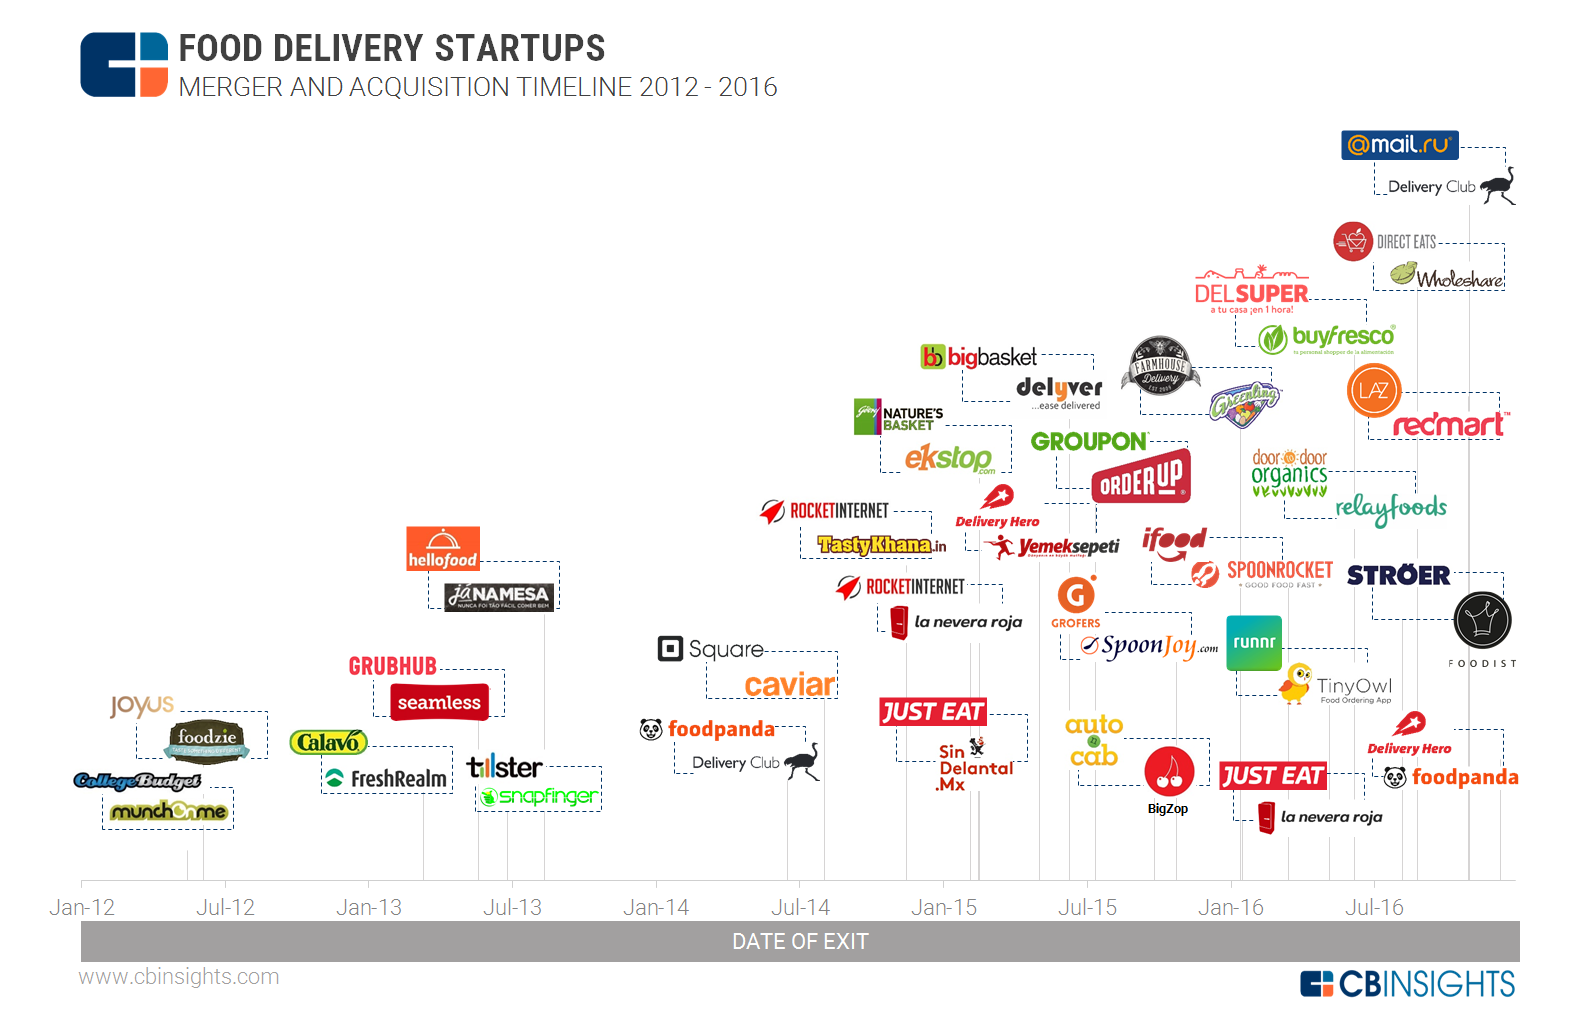 Food Delivery M&A Timeline 3.13.17